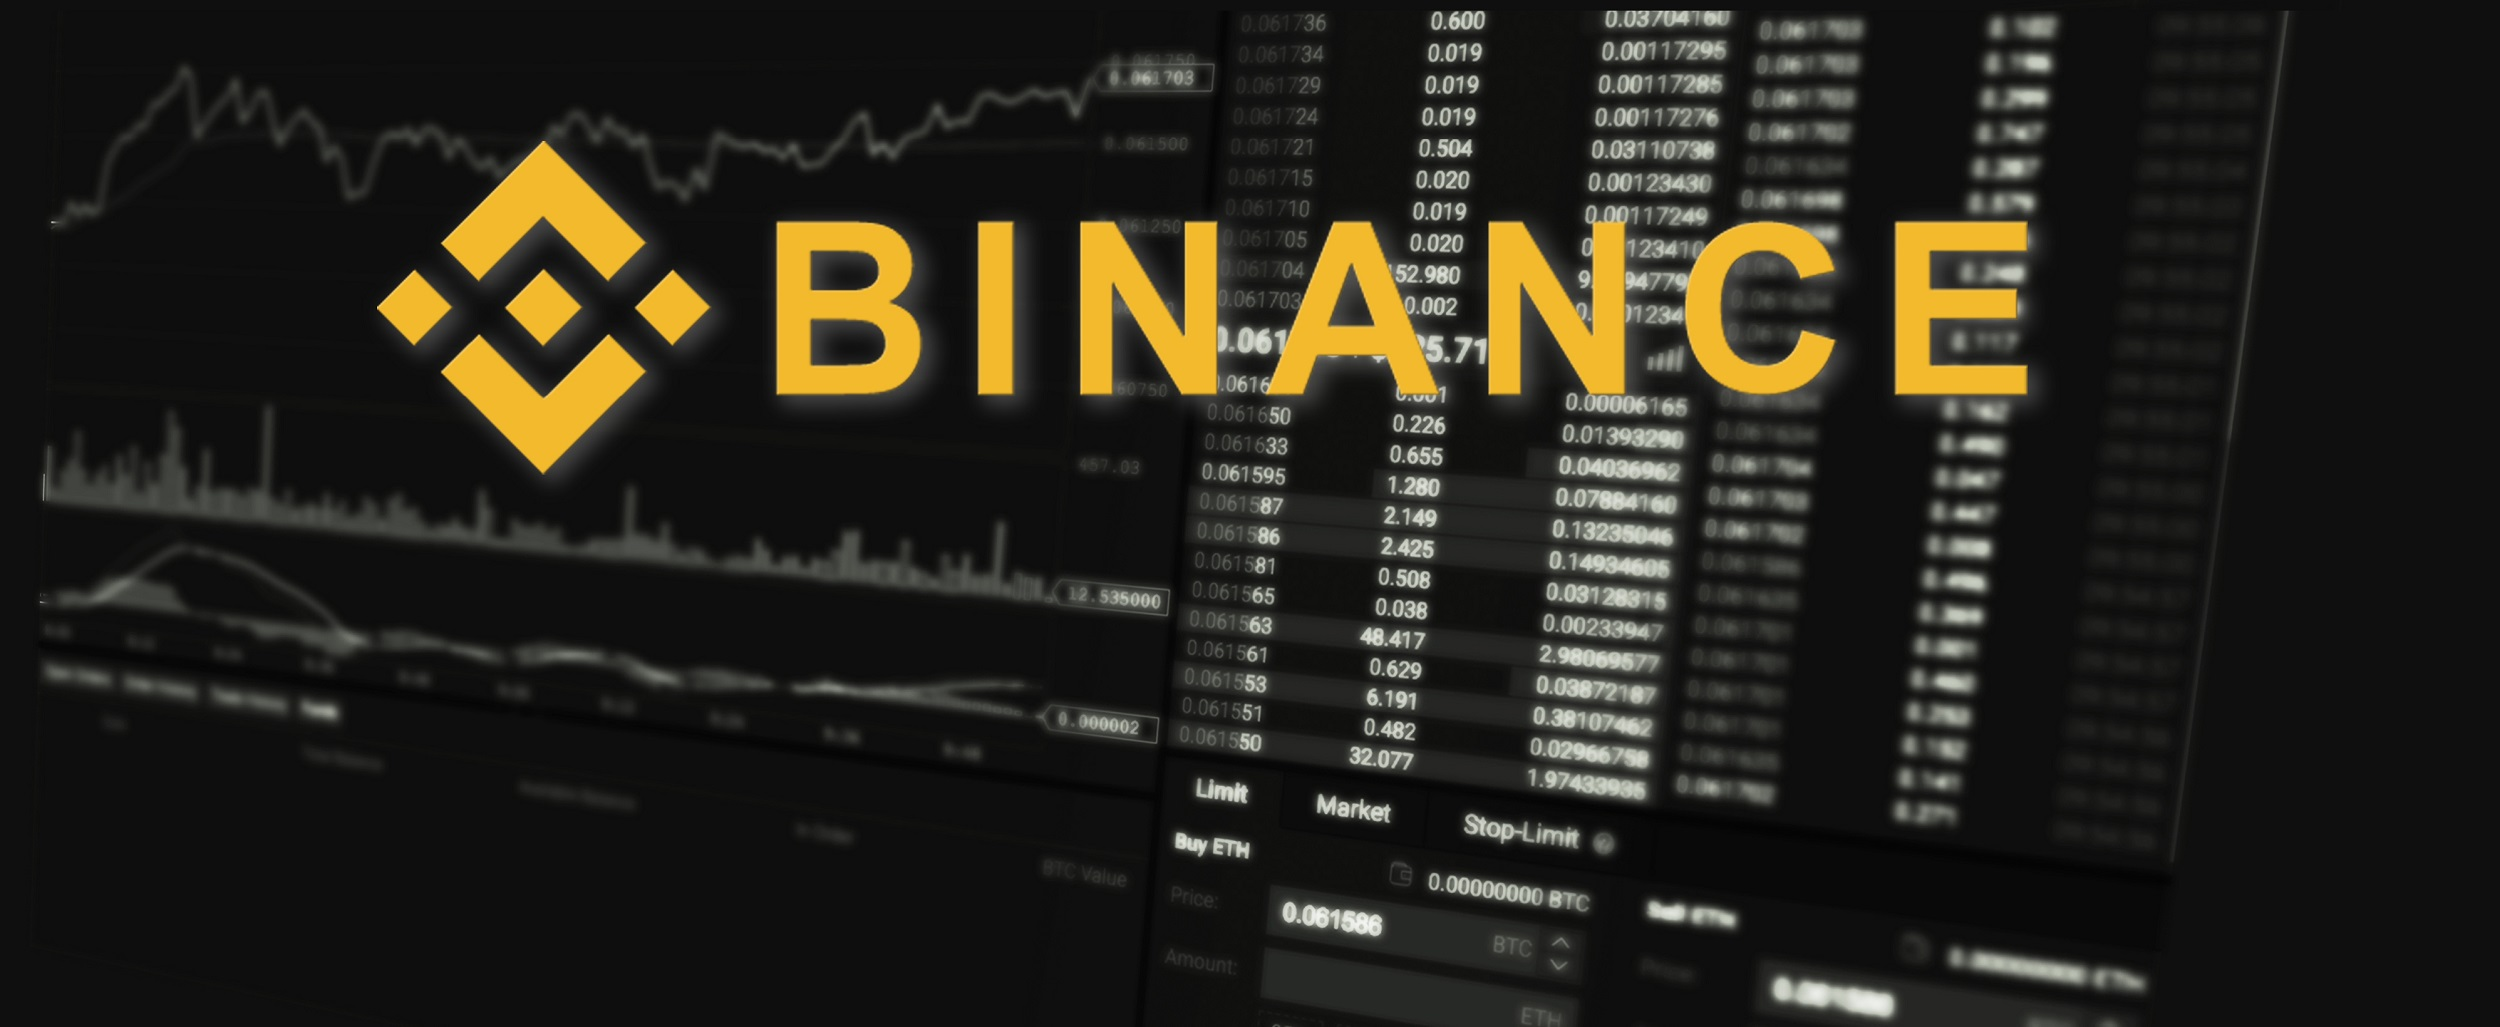 Binance Coin Price Rises Slightly While Other Markets Remain Subdued